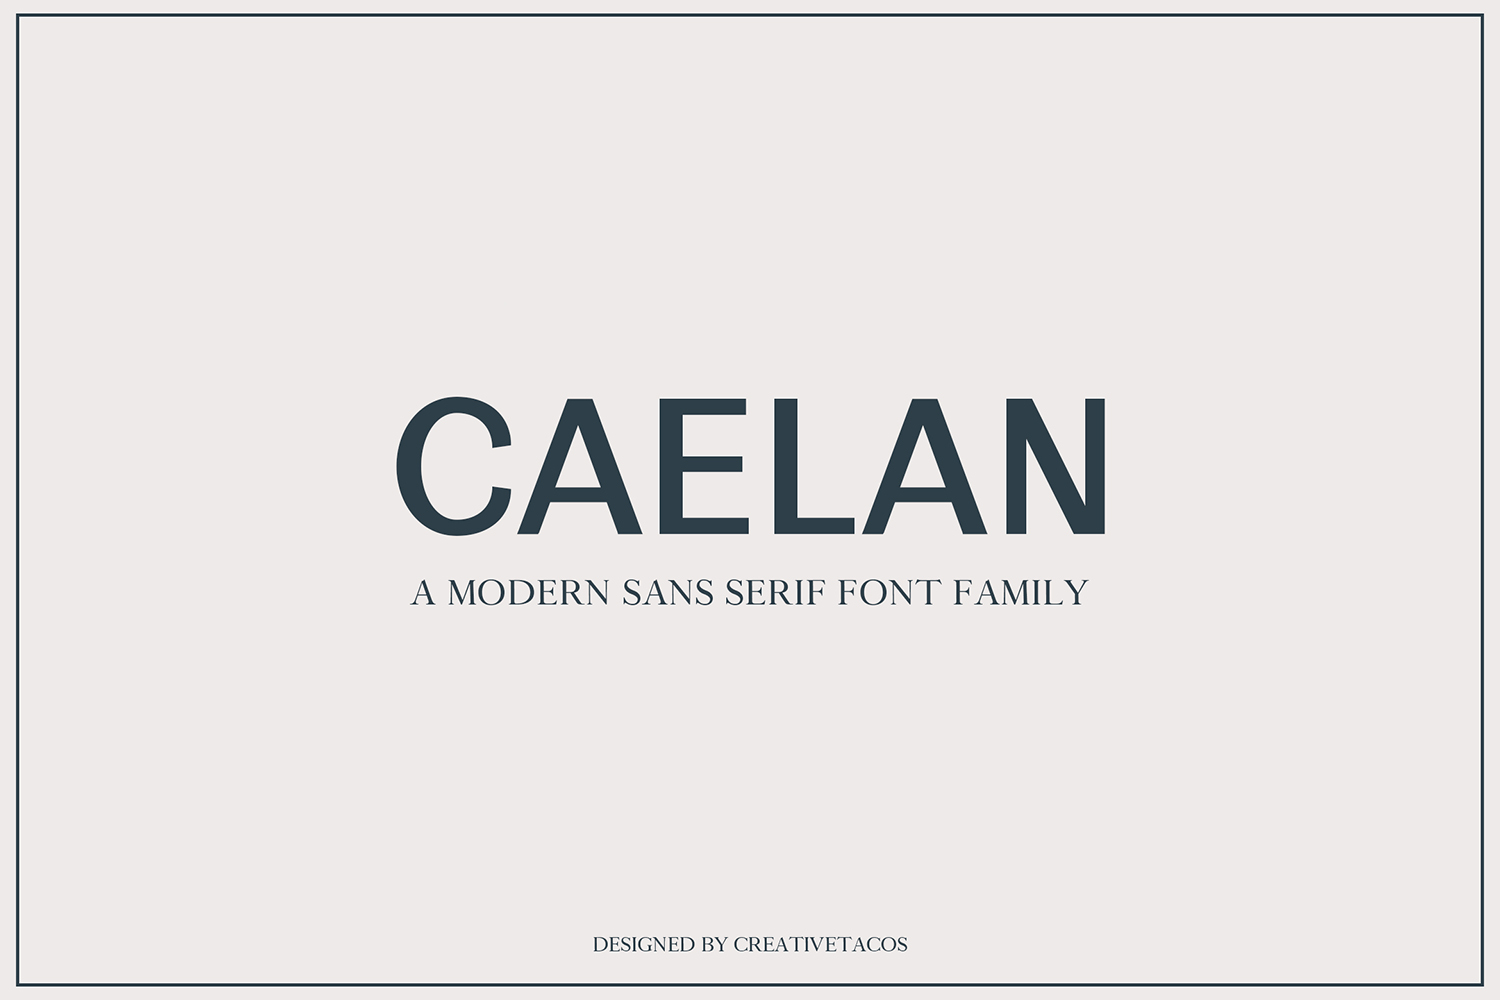 Calean Sans Serif Font Family Pack example image 1